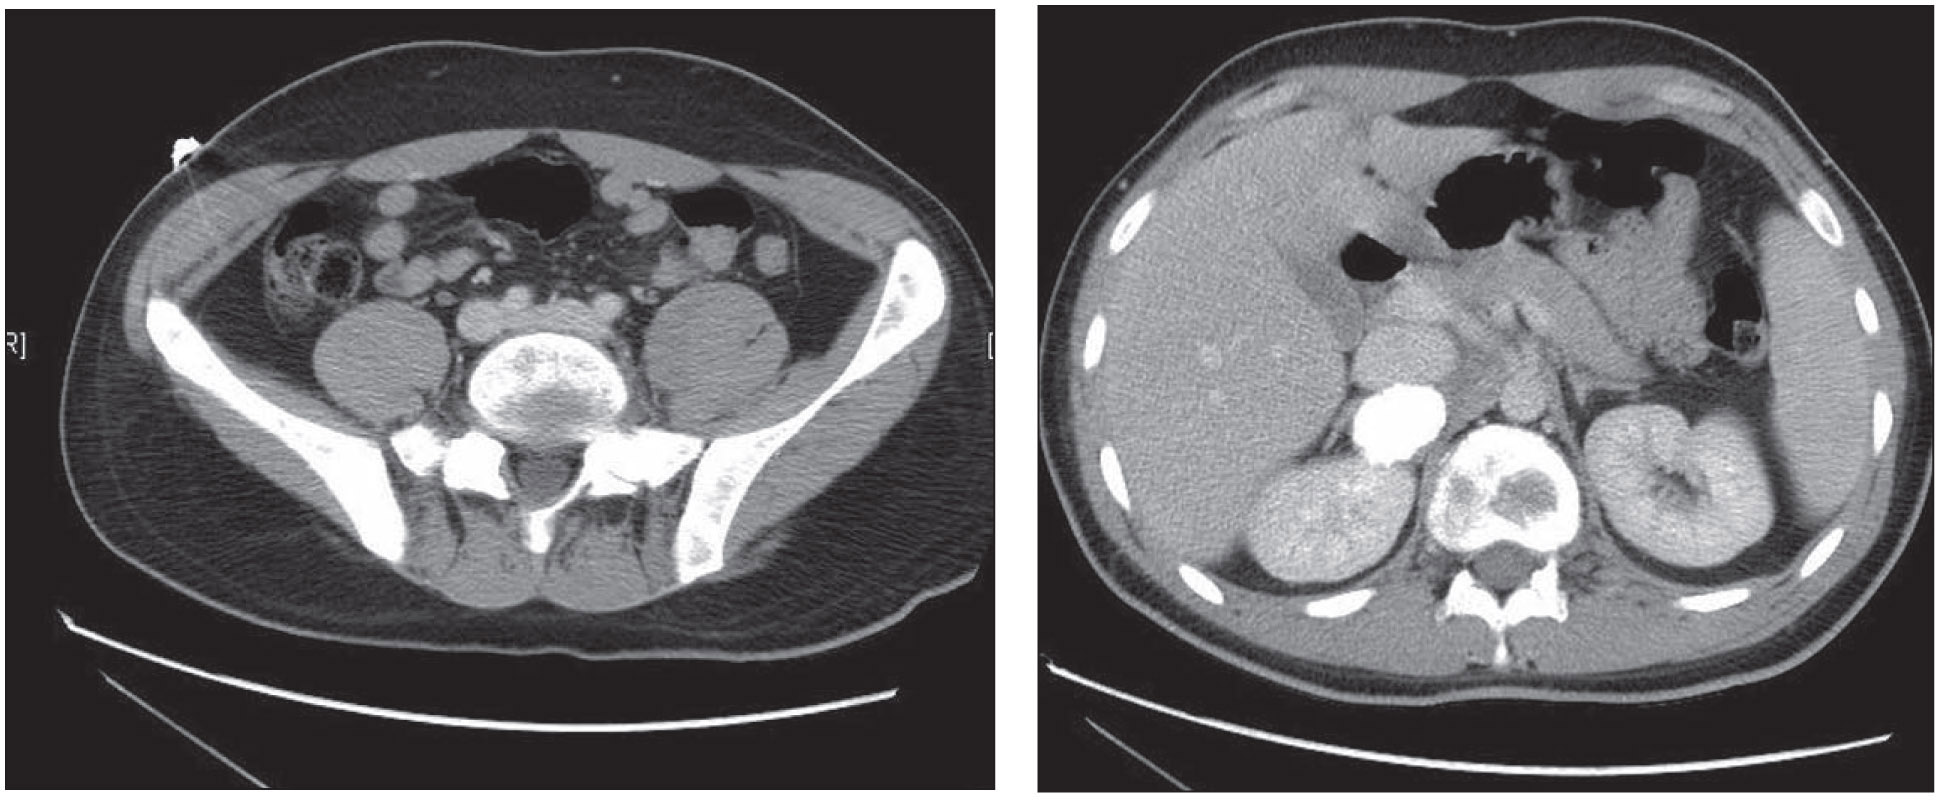 CT Scan of the Abdomen Revealed a Large, Right Adrenal Mass with a Large Calcified Component and Multiple Scattered Lucencies Throughout the Spine and Pelvis.